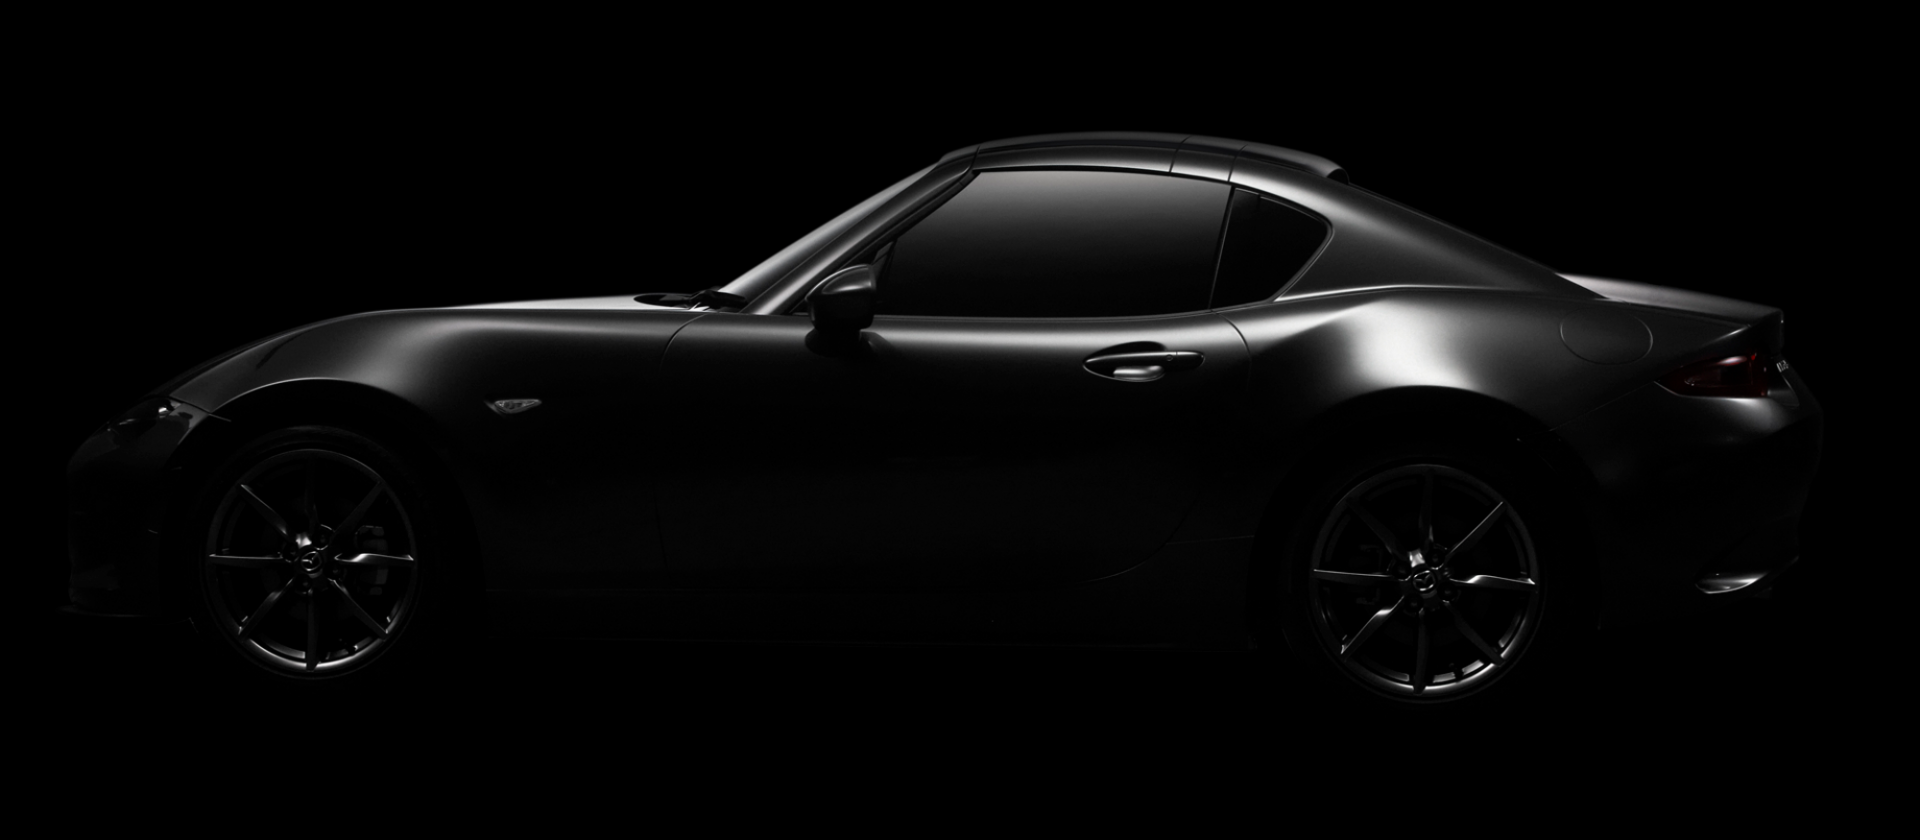 18mazda_mx-5rf_photo_design_008